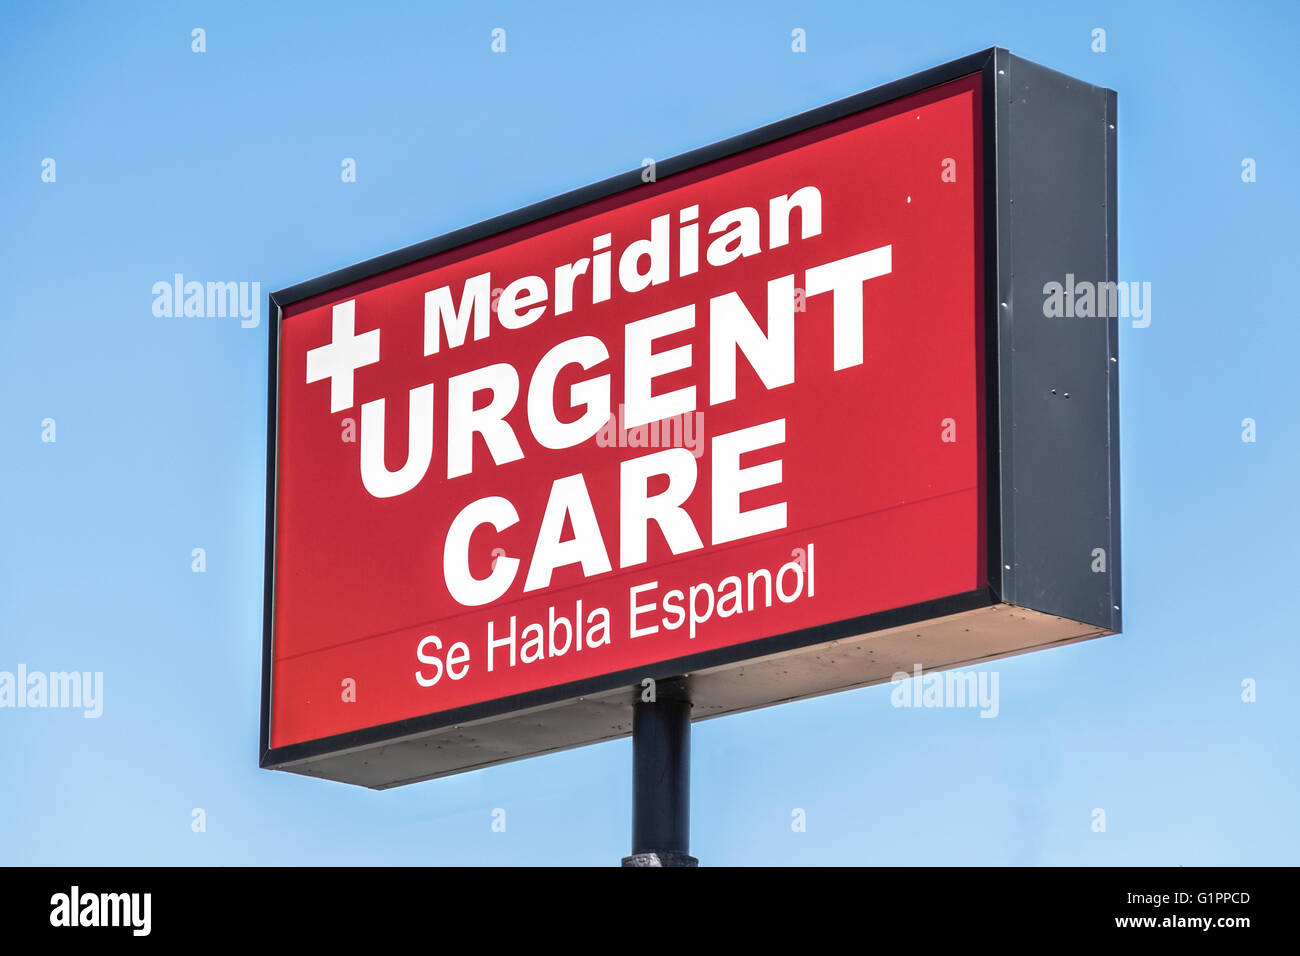 A pole sign advertising urgent medical care. USA. 2305 N. Meridian. - Stock Image